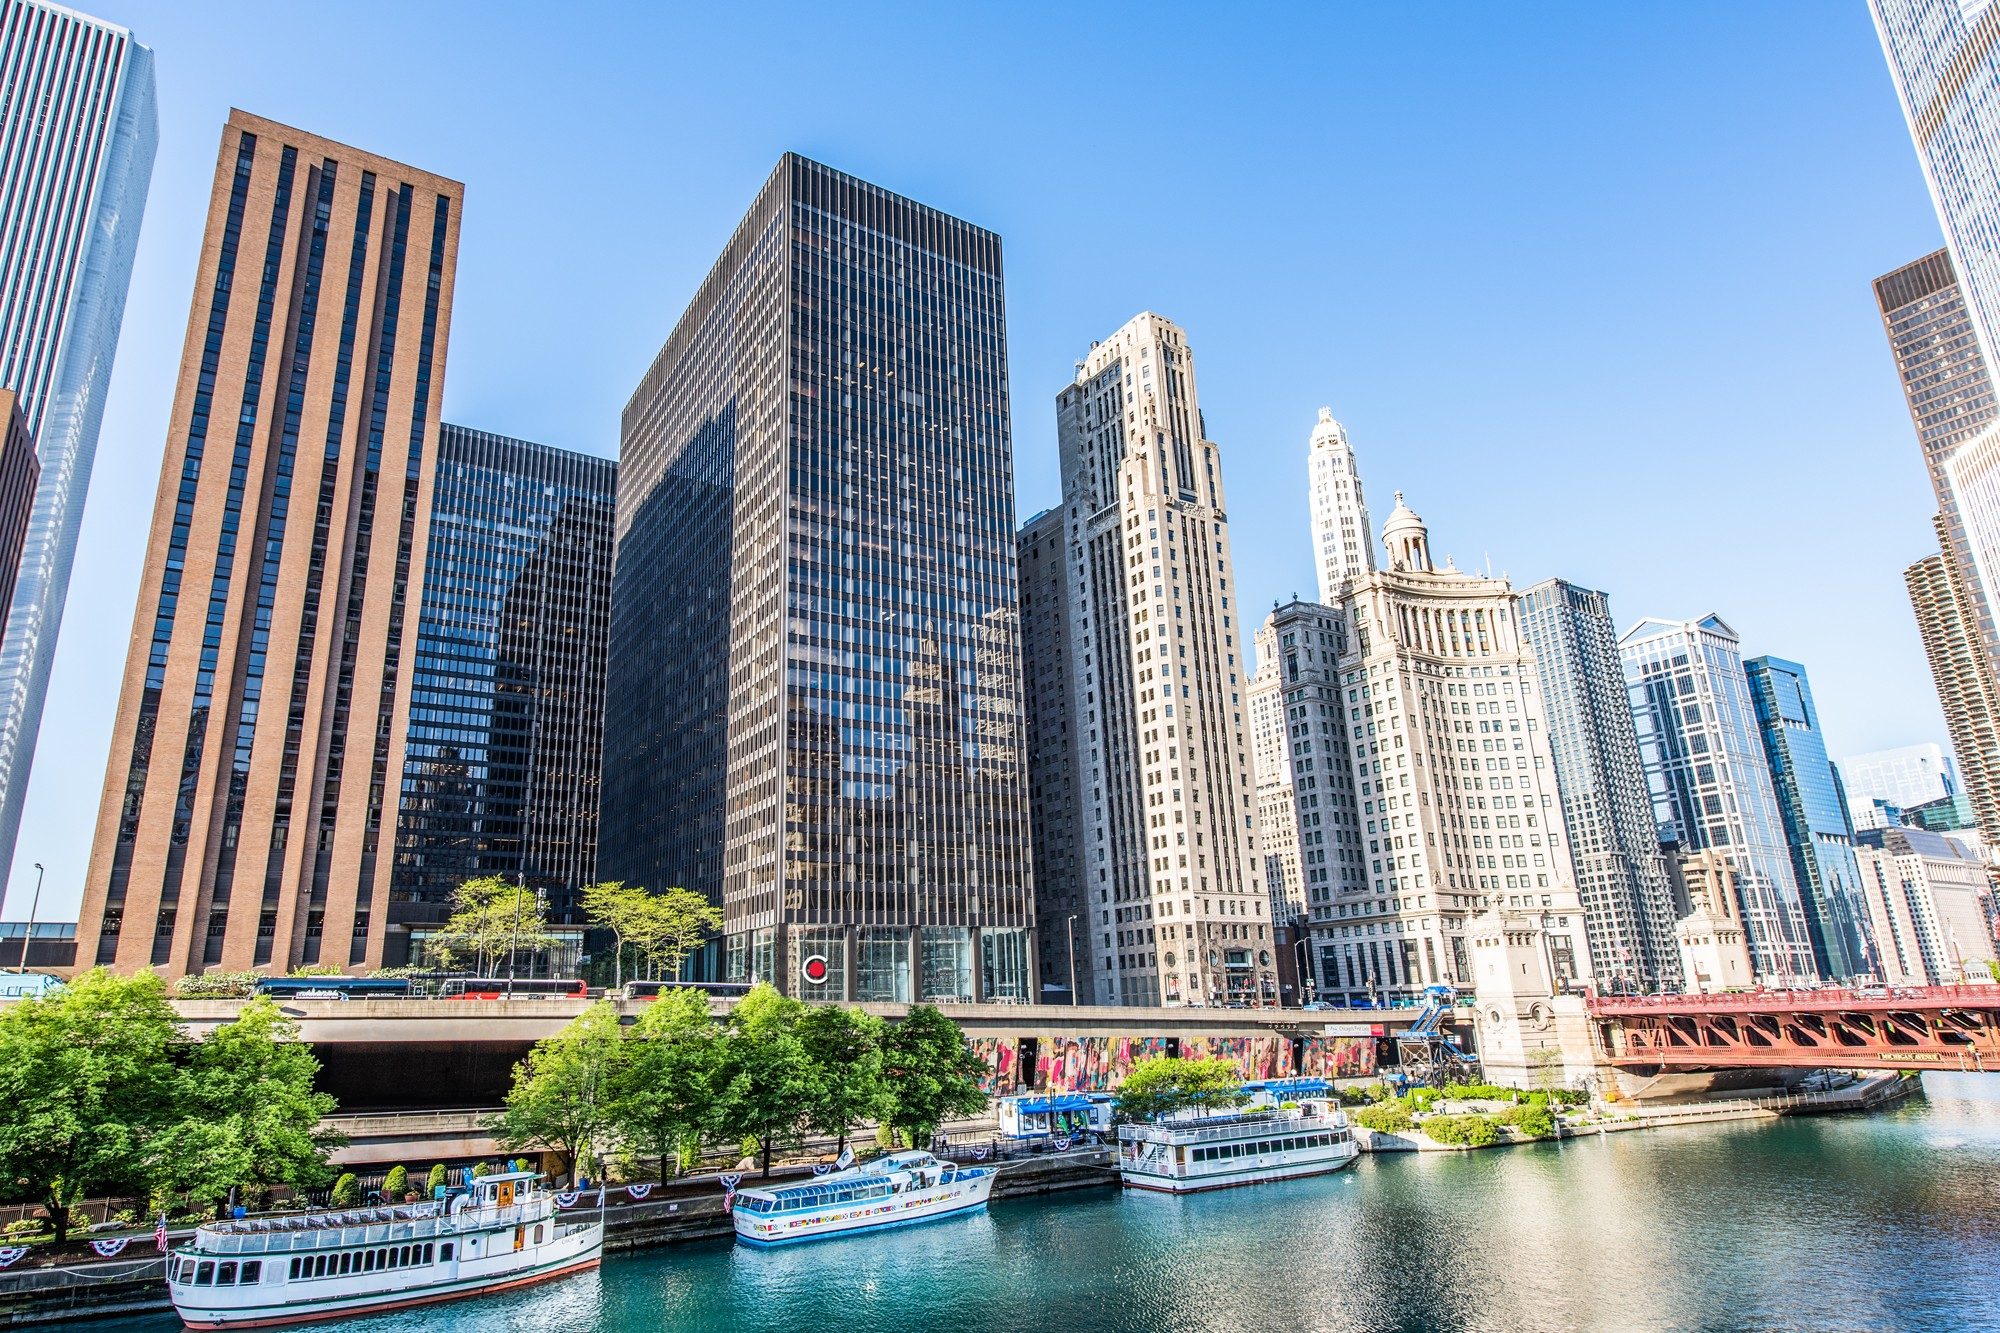 Chicago Architecture Center opens August 31 · Chicago